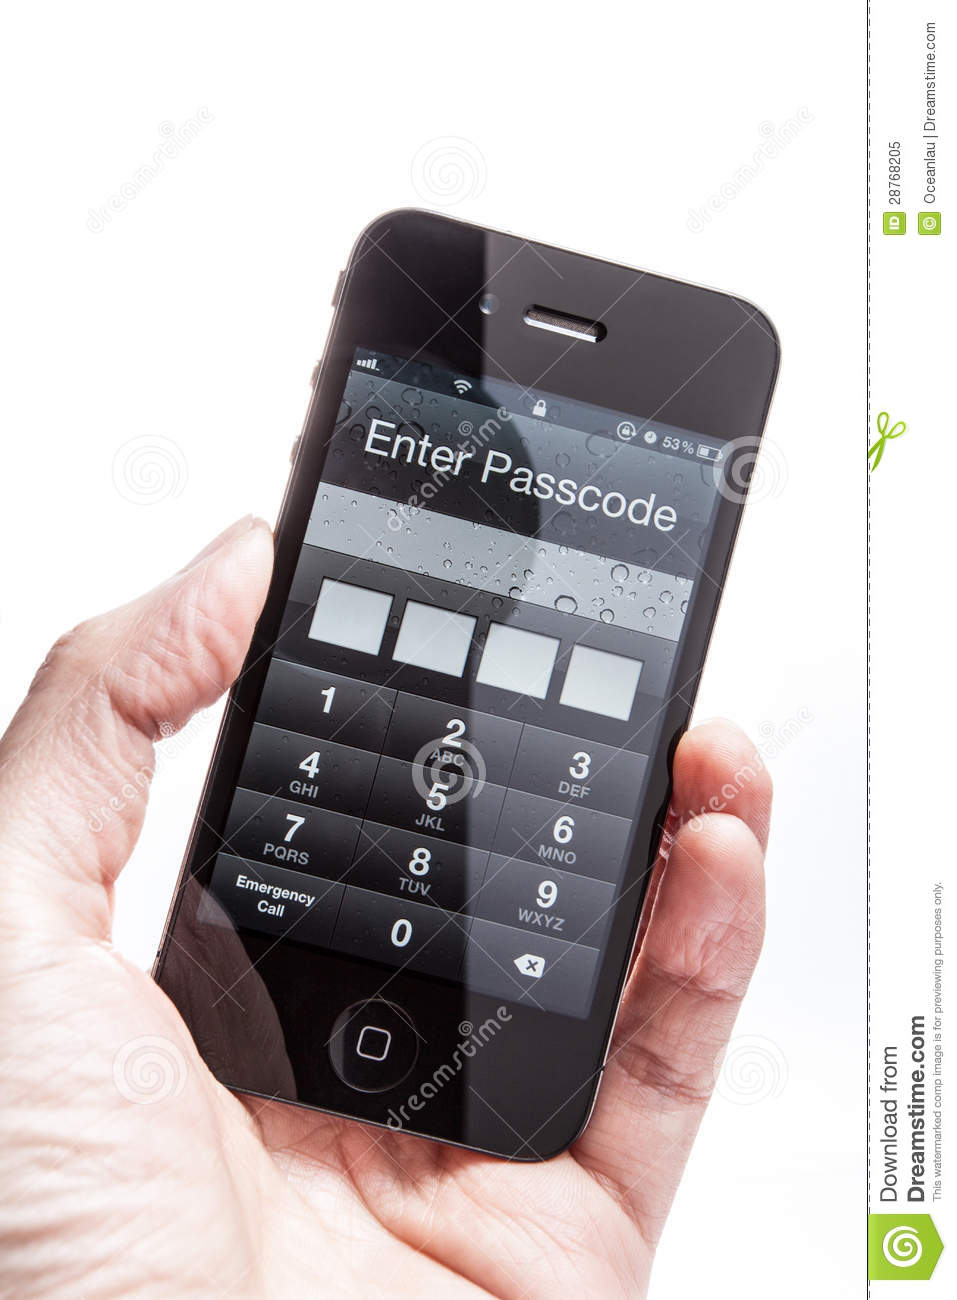 how to unlock iphone 4s passcode iphone 4s enter the password to unlock editorial image 19221